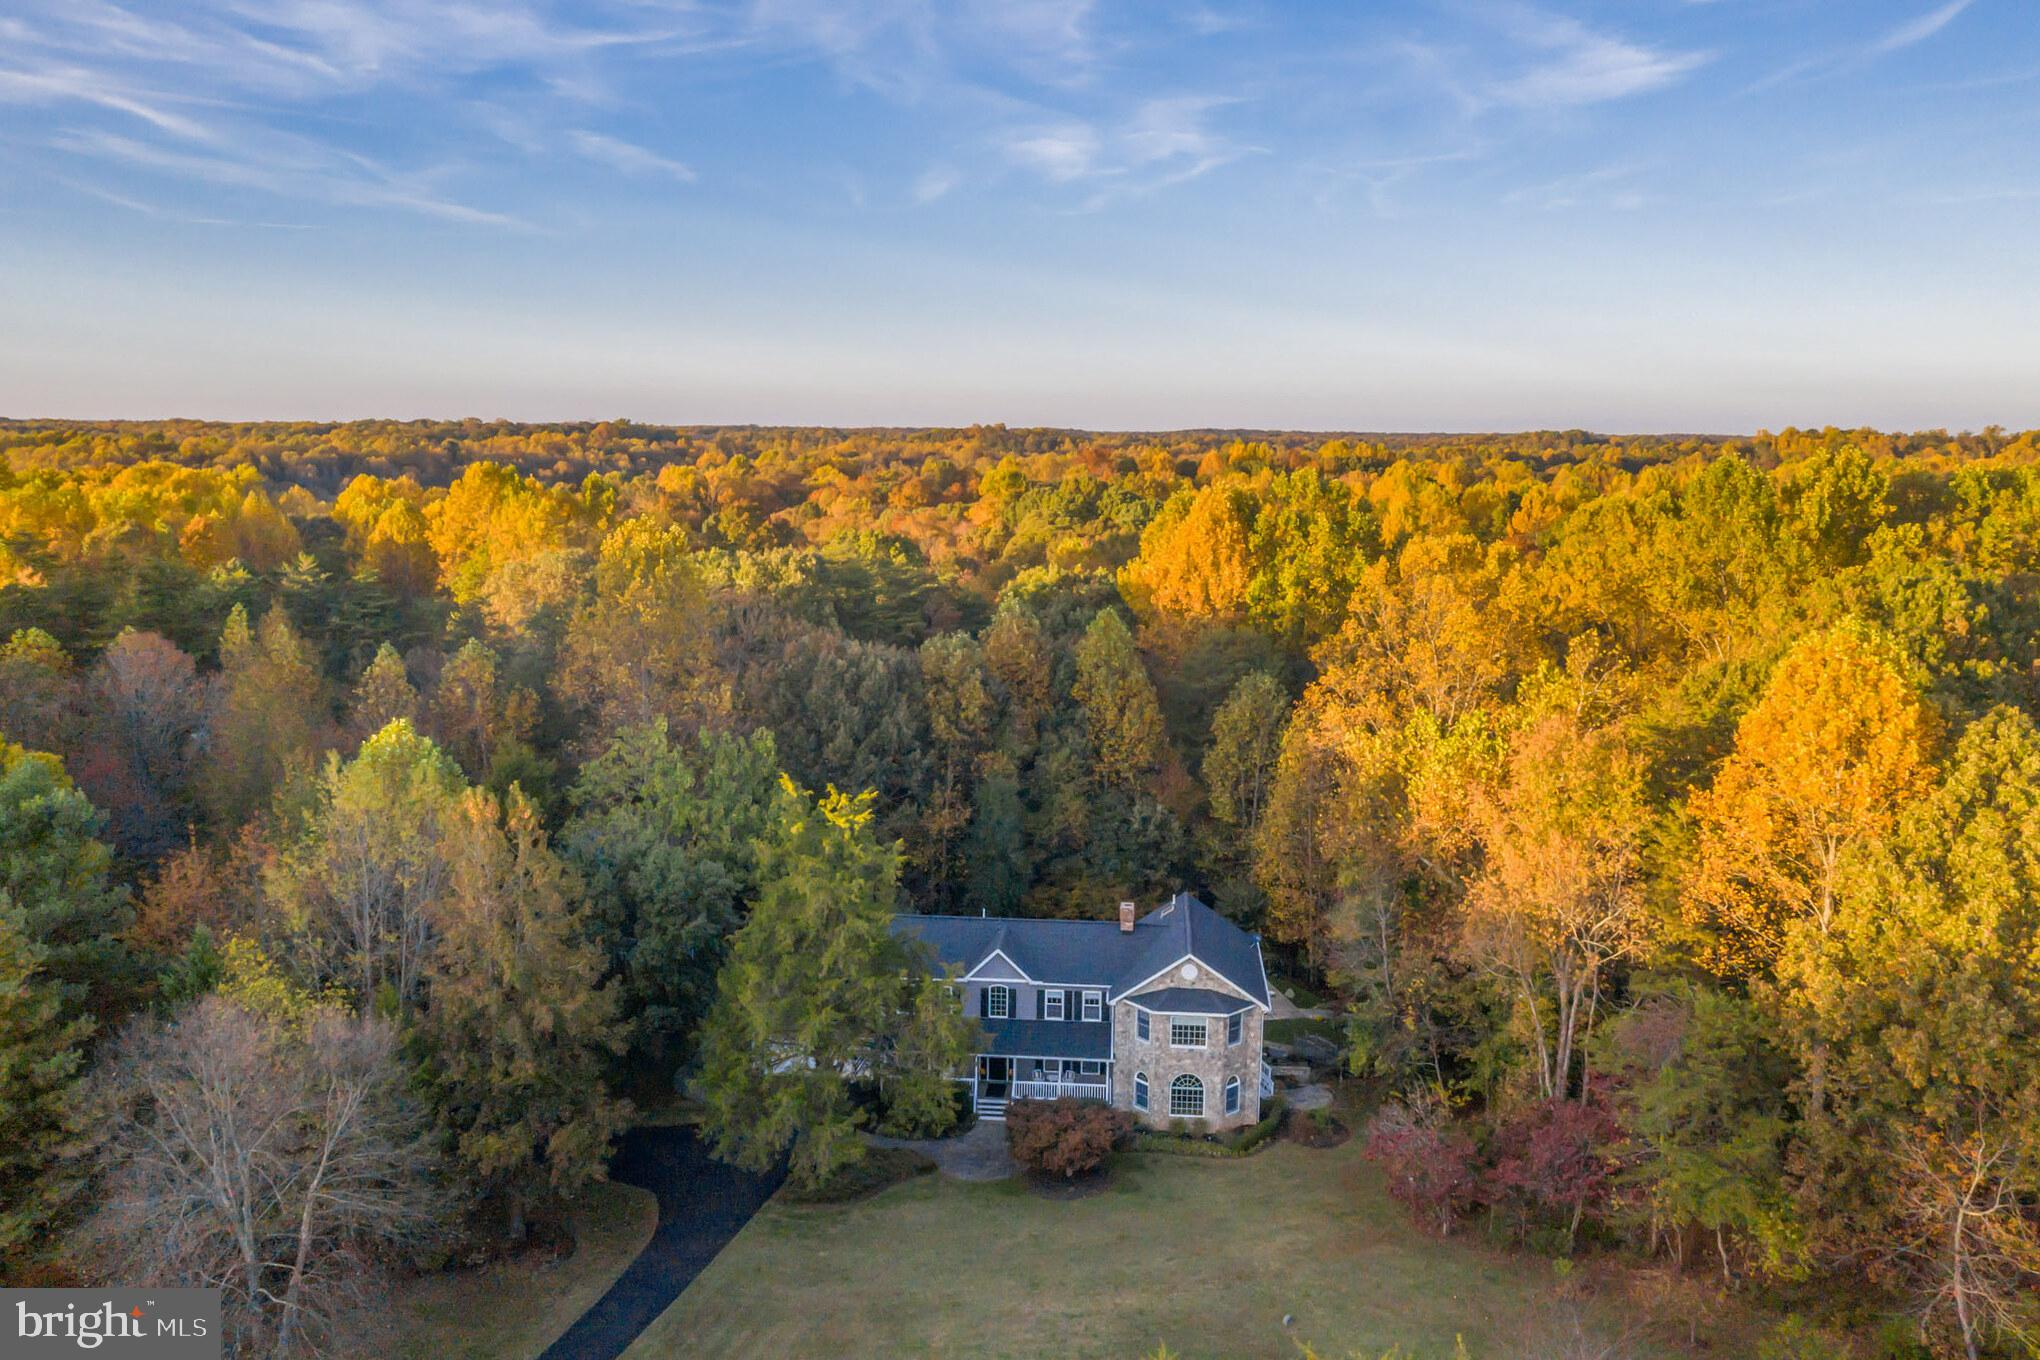 *** OPEN HOUSE SUNDAY 1-4 PM ***This remarkable move-in ready home on 3.4 acres in sought-after Hunt